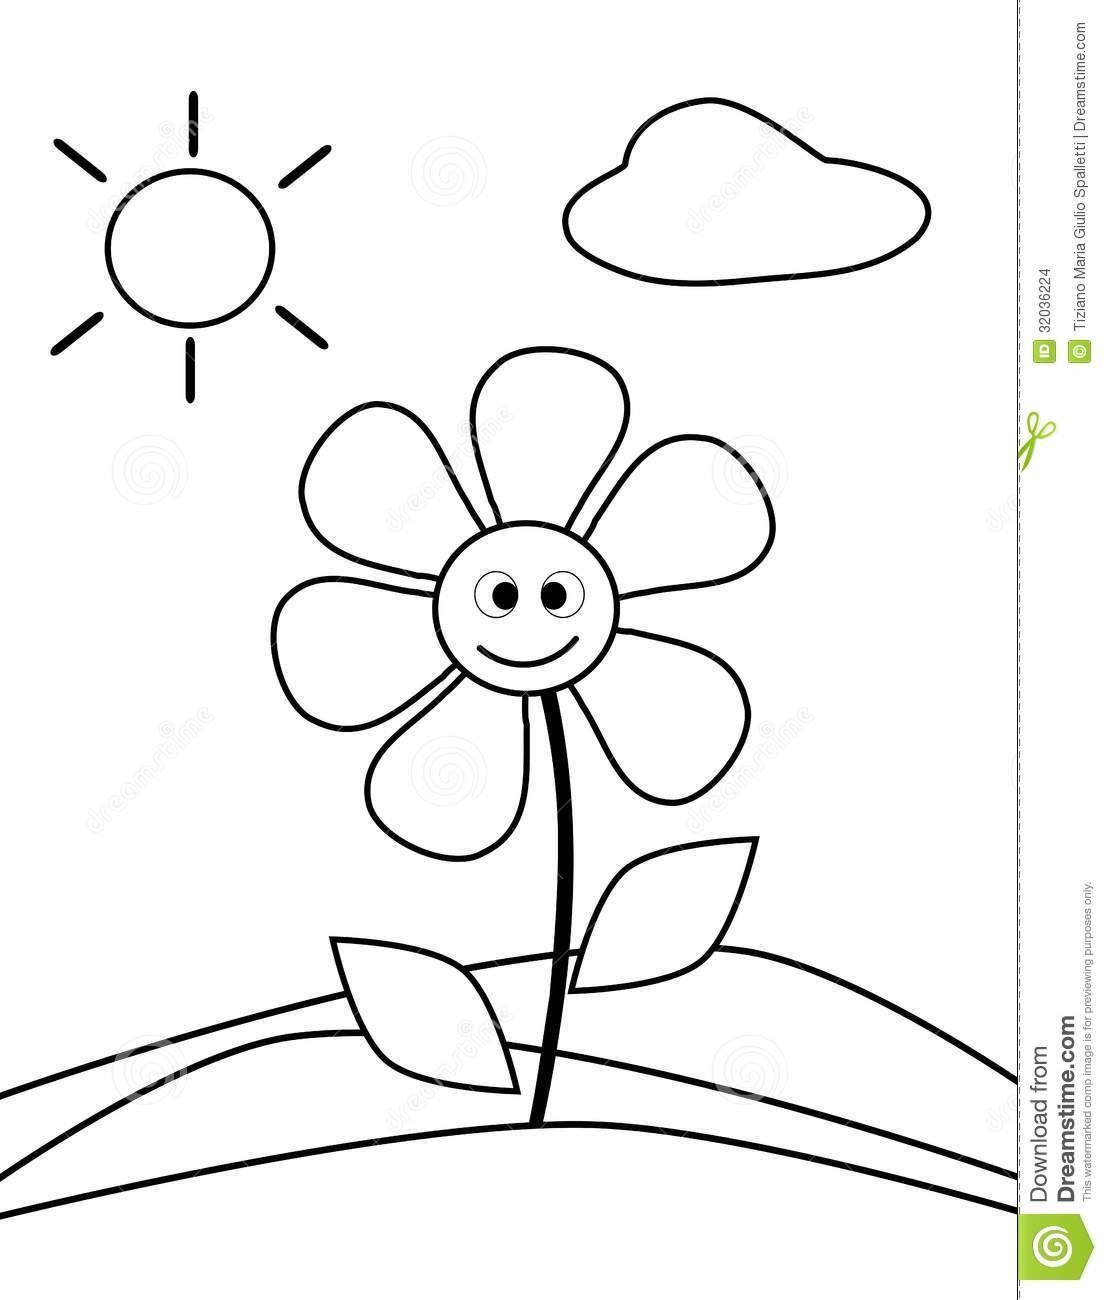 coloring pictures for 2 year olds free download coloring books for 2 year olds coloring pages for pictures year olds 2 coloring